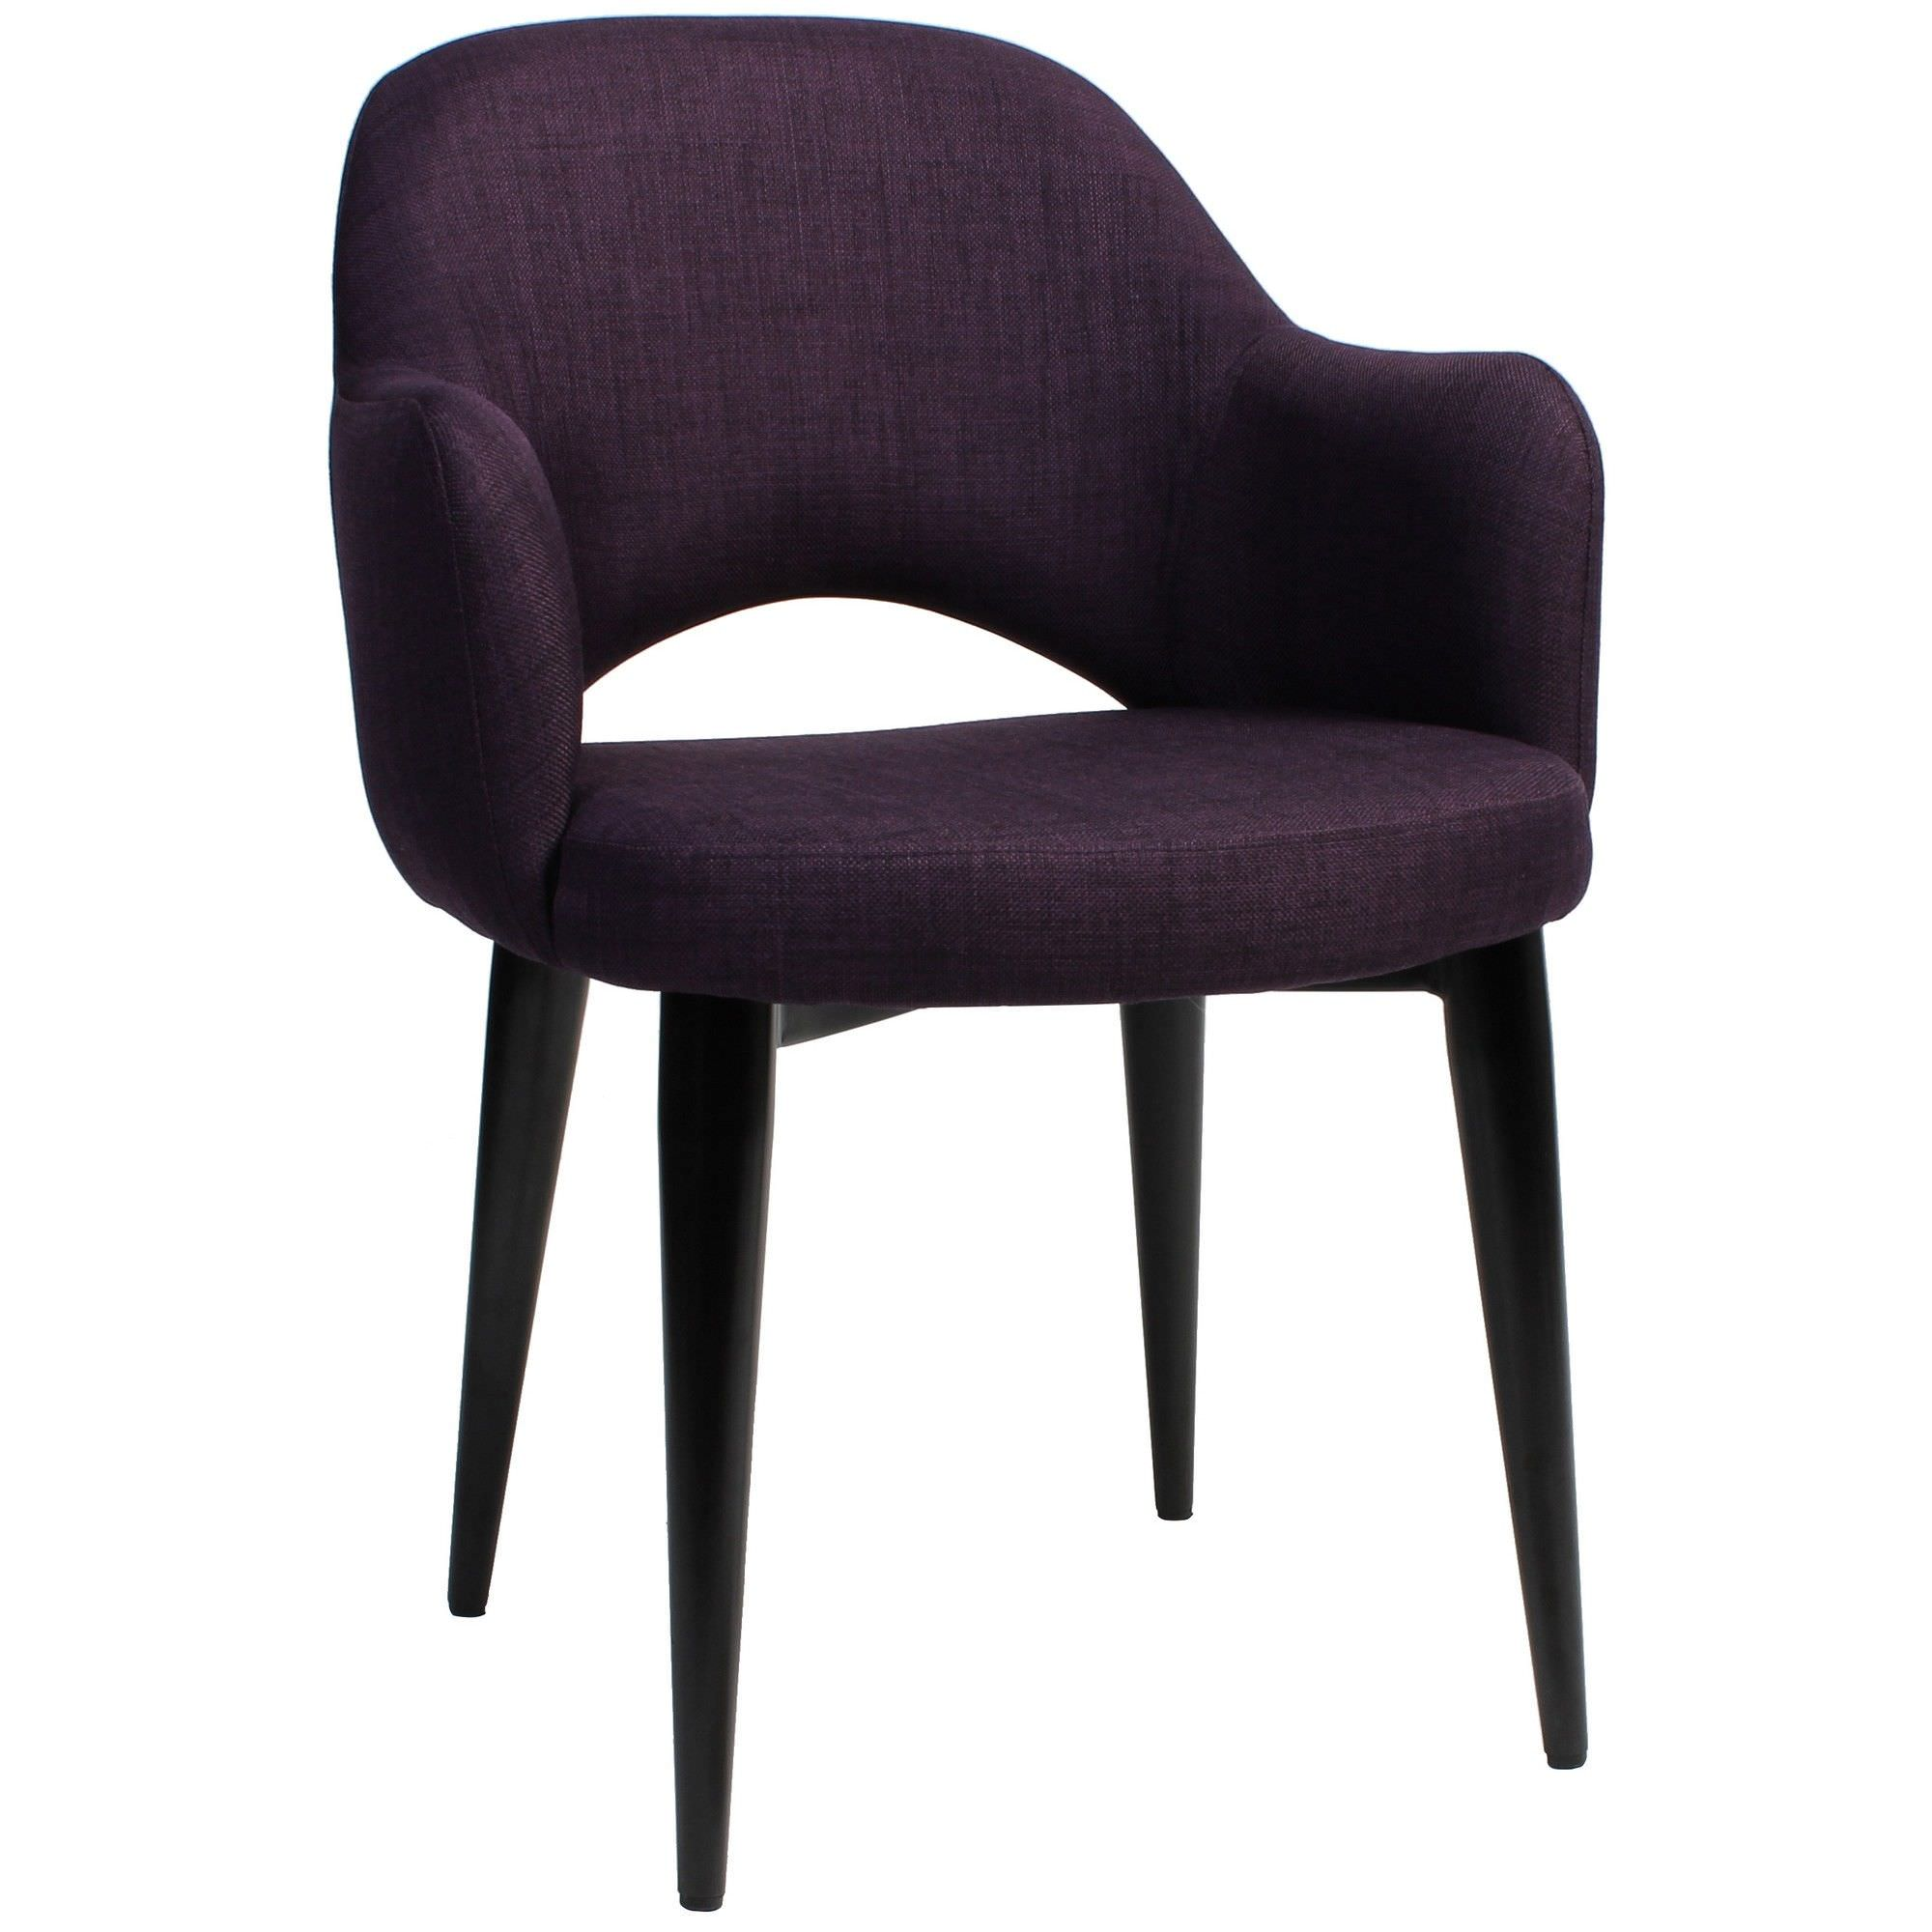 Albury Commercial Grade Fabric Dining Armchair, Metal Leg, Purple / Black